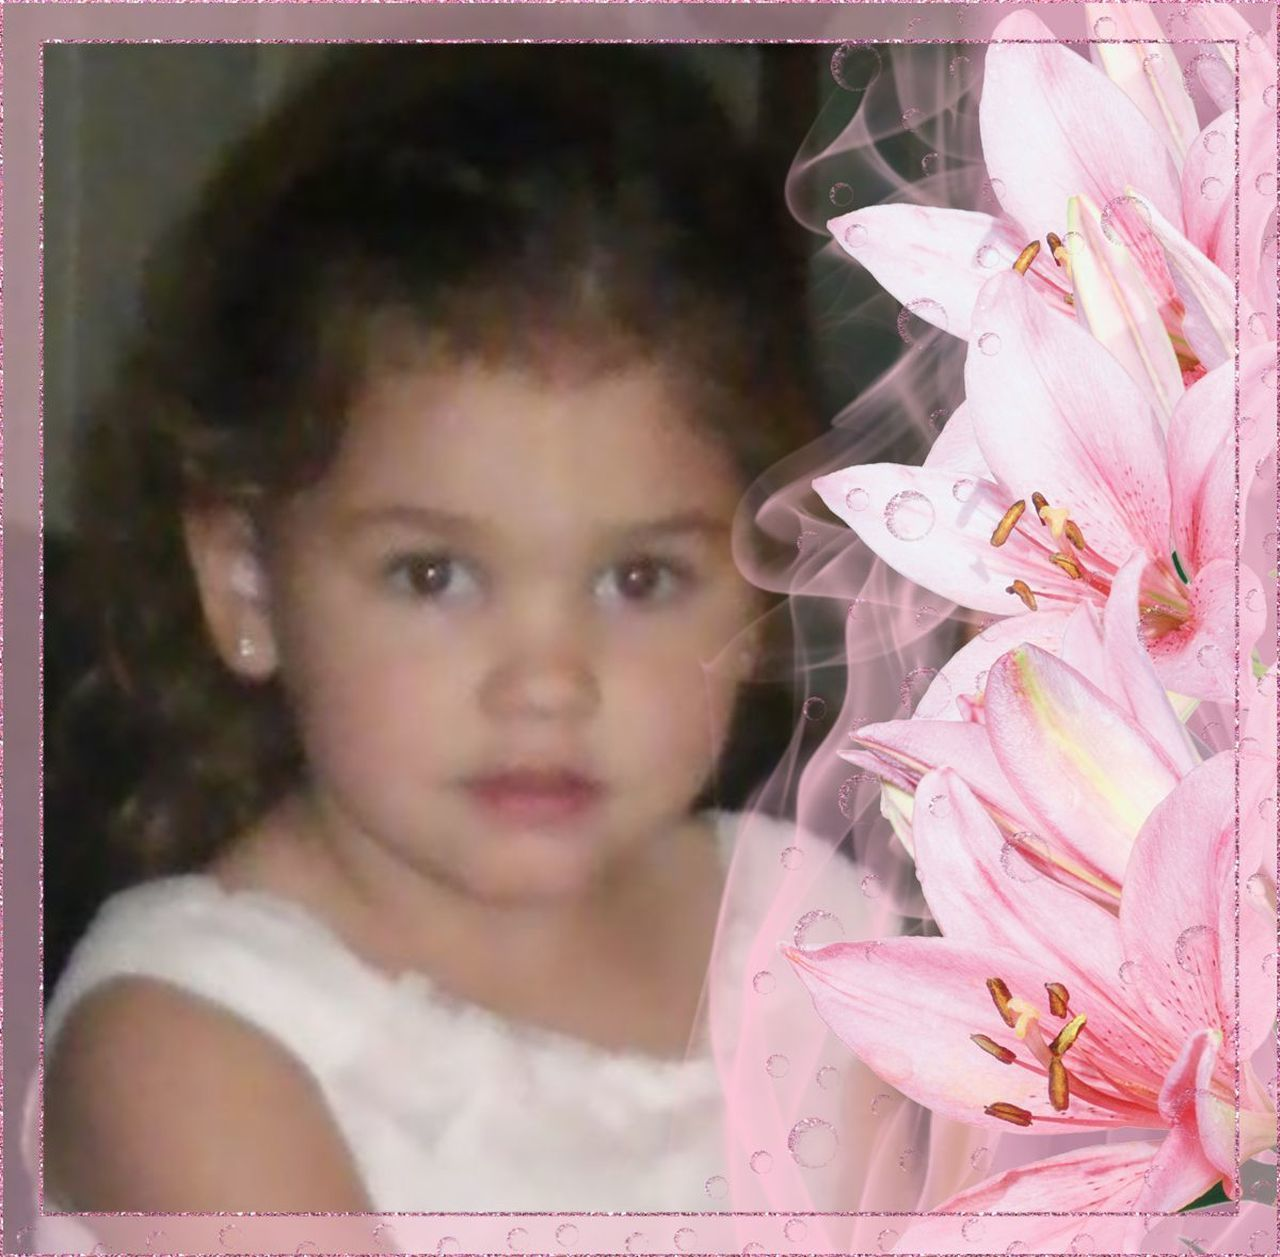 Soft Anyssa The Innocence Of A Child We Are Family